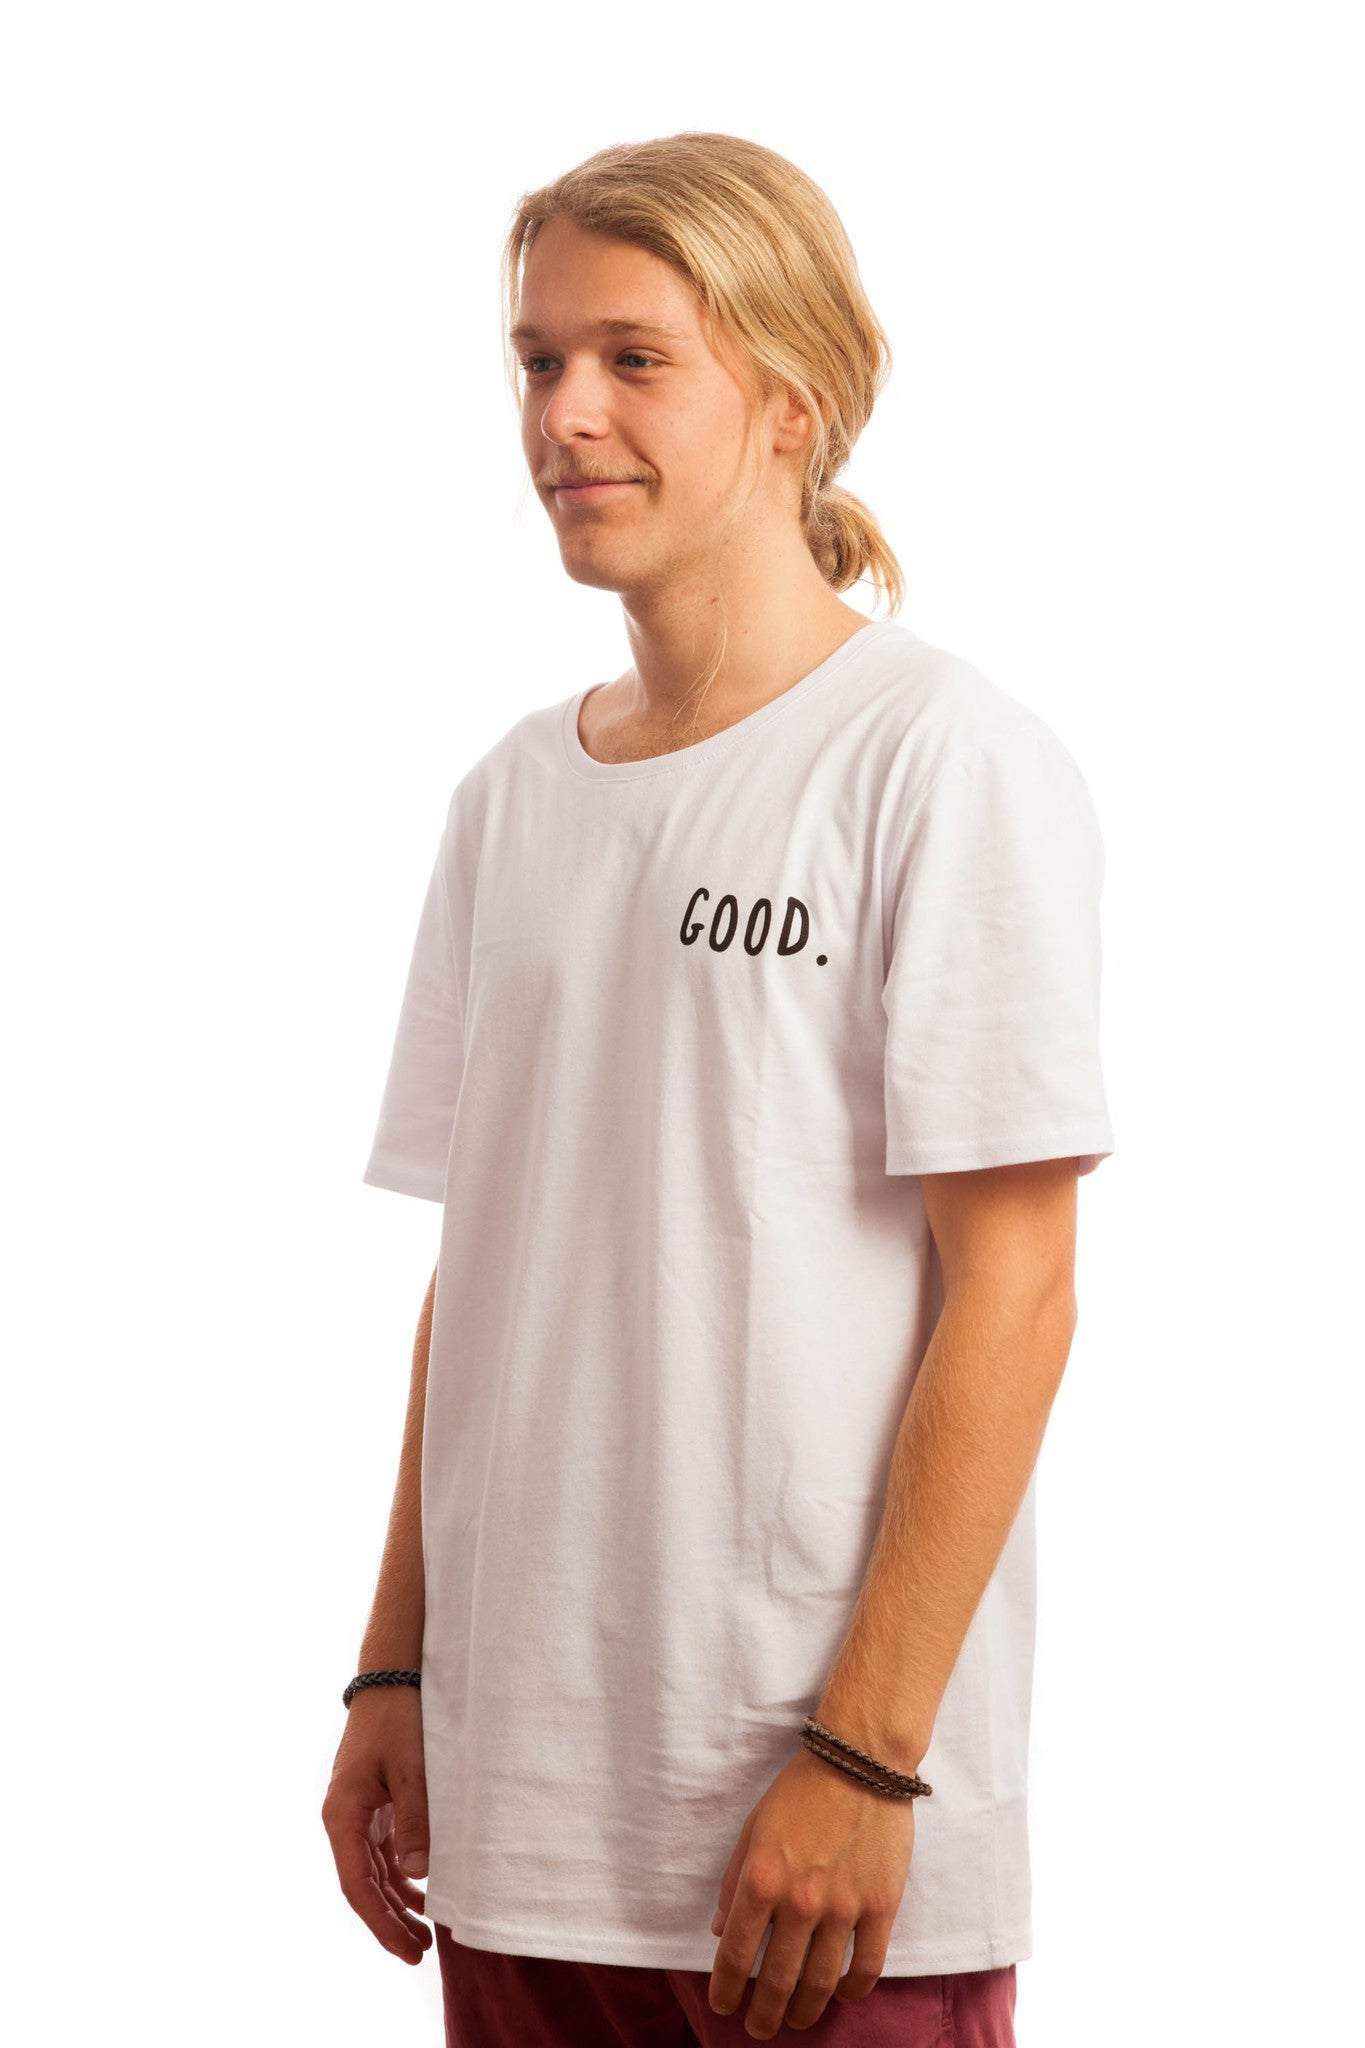 Havin' A Ball Tee // White